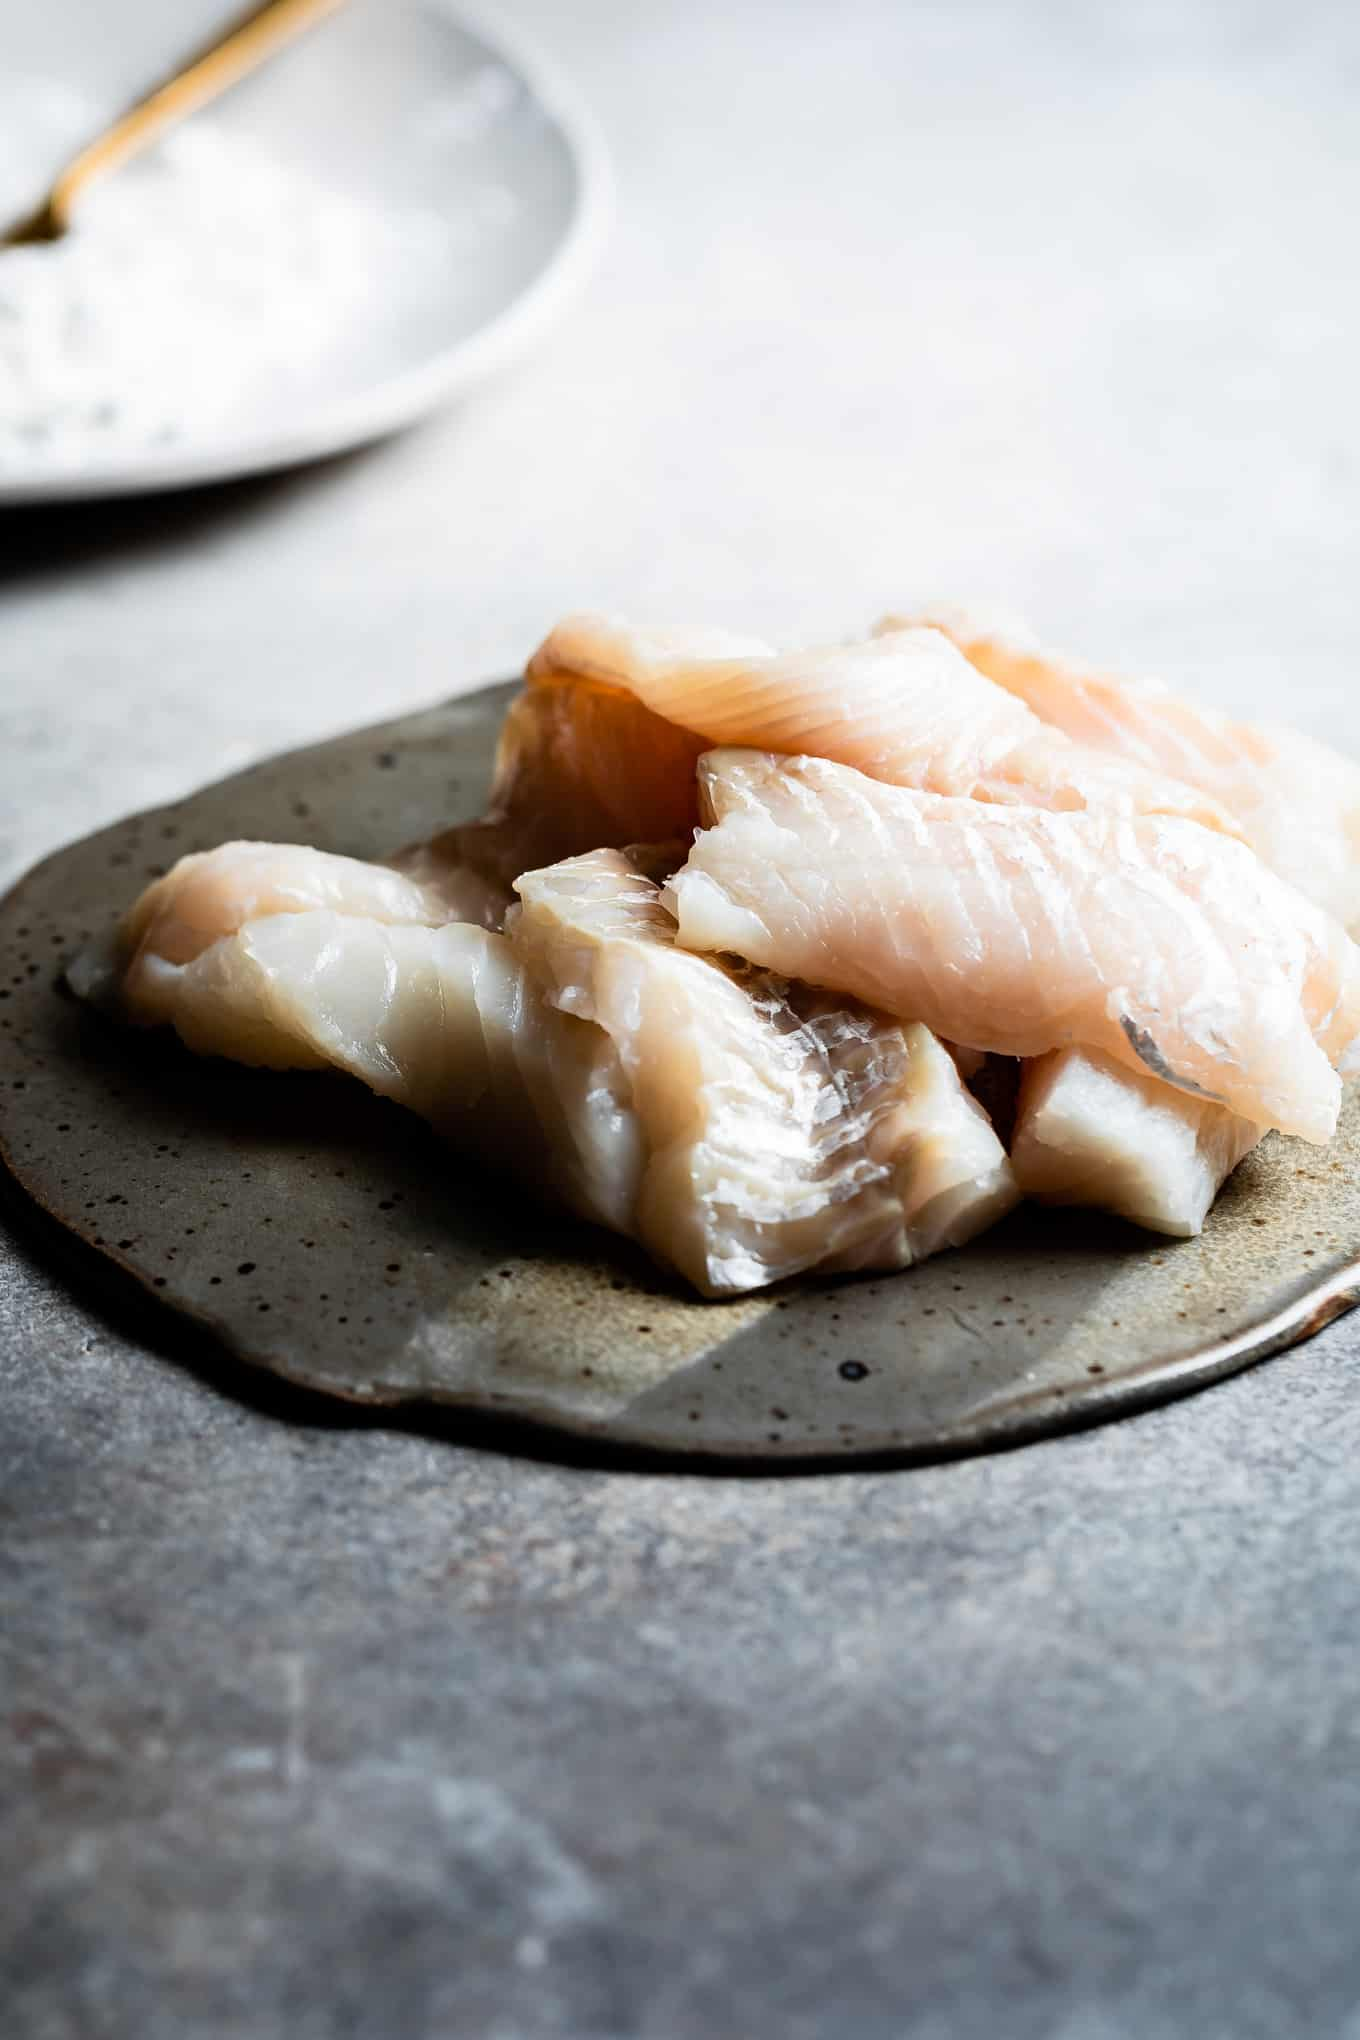 Cod: Seafood Watch Sustainable Seafood